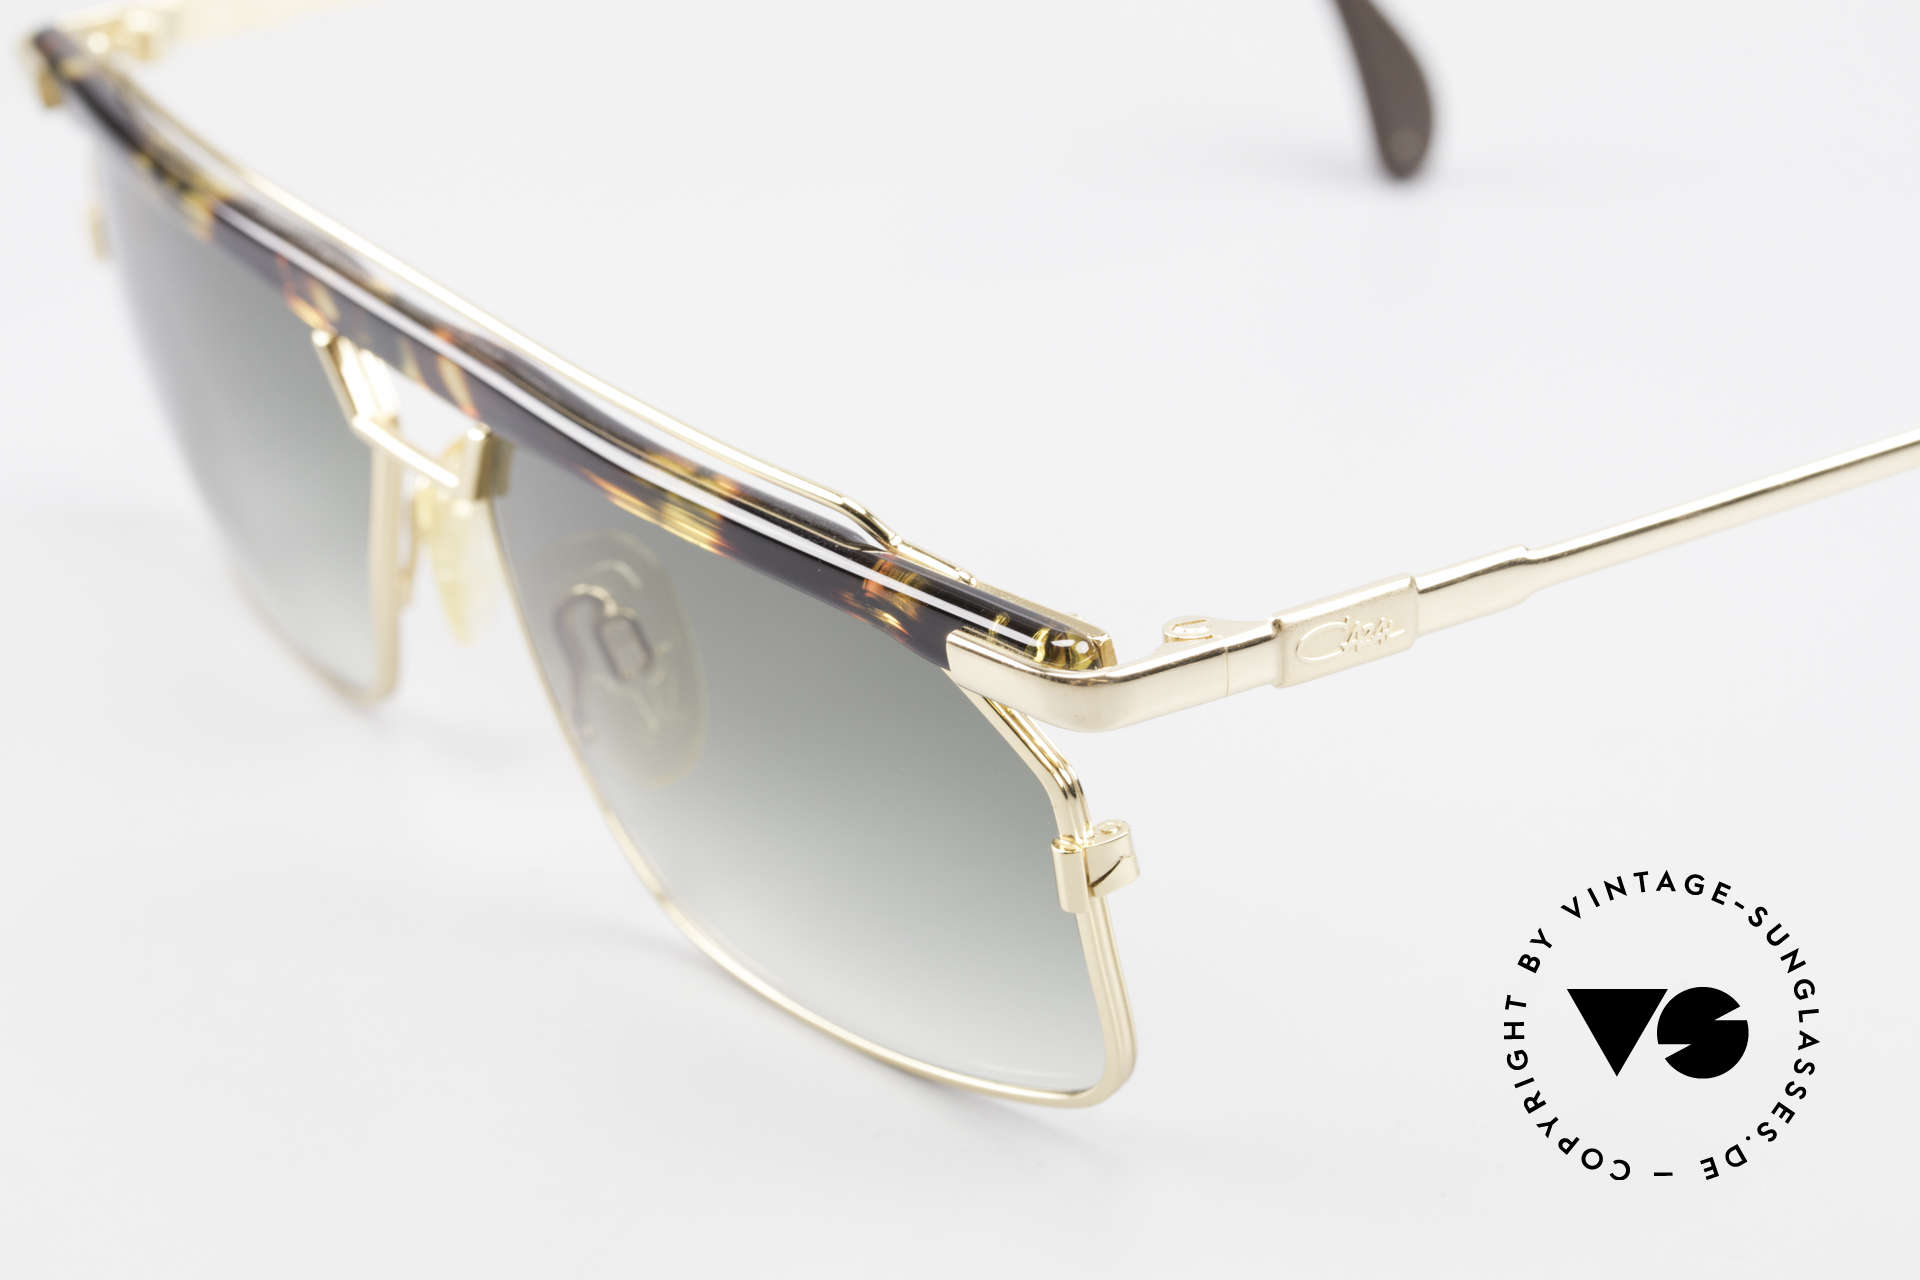 Cazal 752 Extraordinary Sunglasses 90's, great metalwork and overall craftmanship; Top!, Made for Men